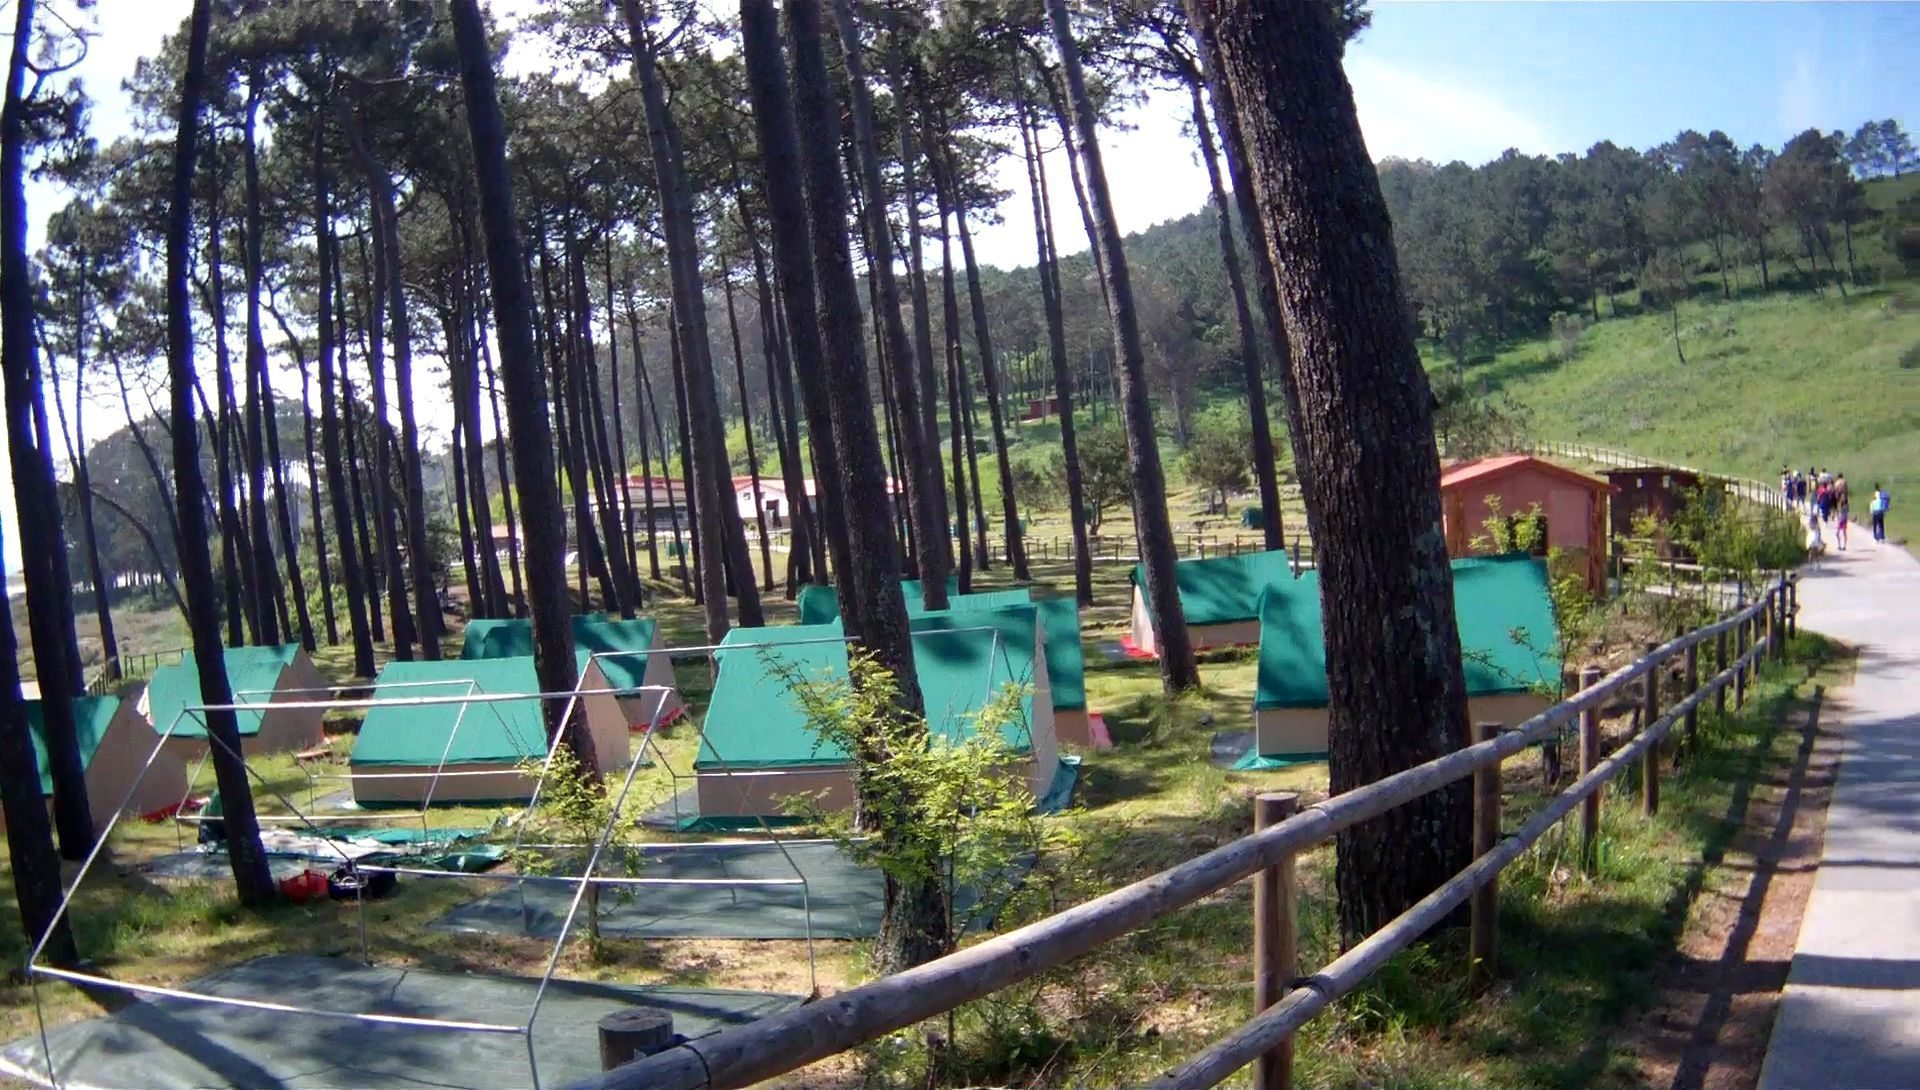 The Camping Site in the Cíes Islands